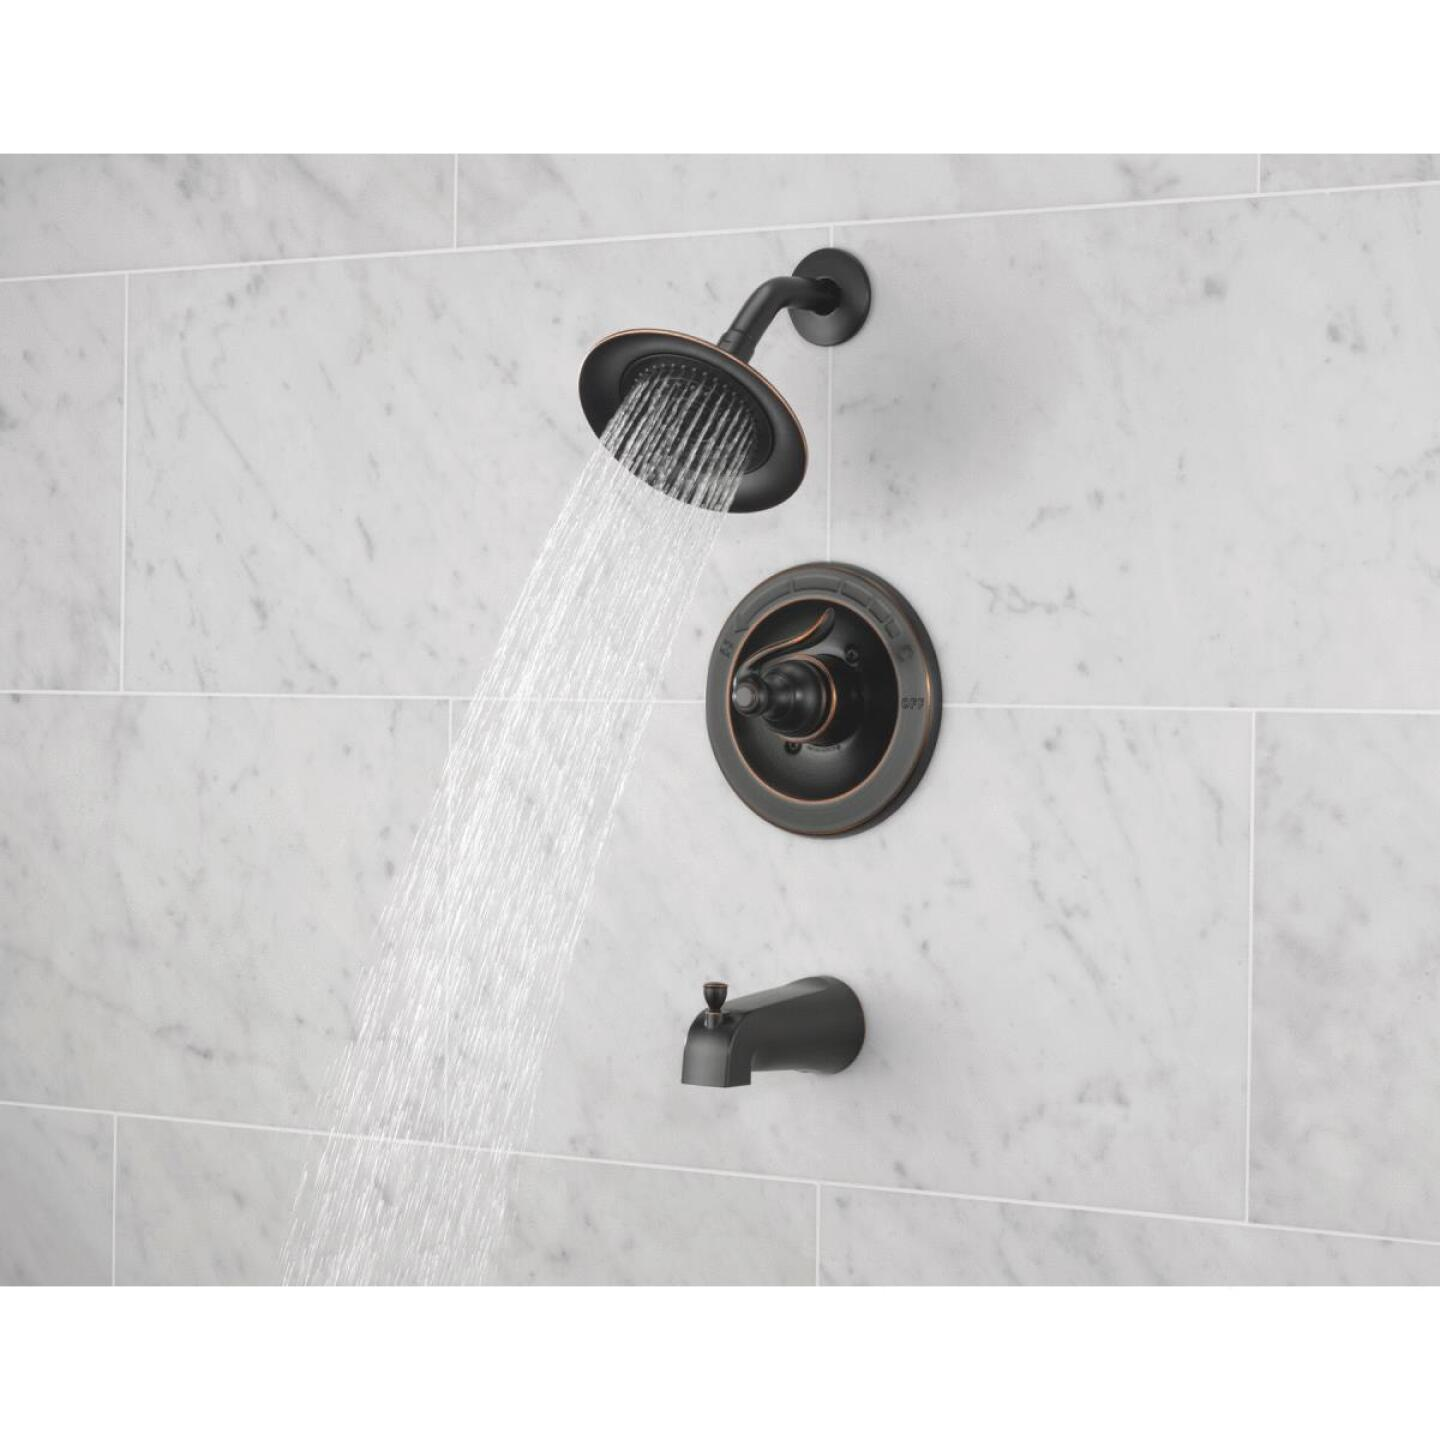 Delta Oil-Rubbed Bronze Single-Handle Lever Tub & Shower Faucet Image 1